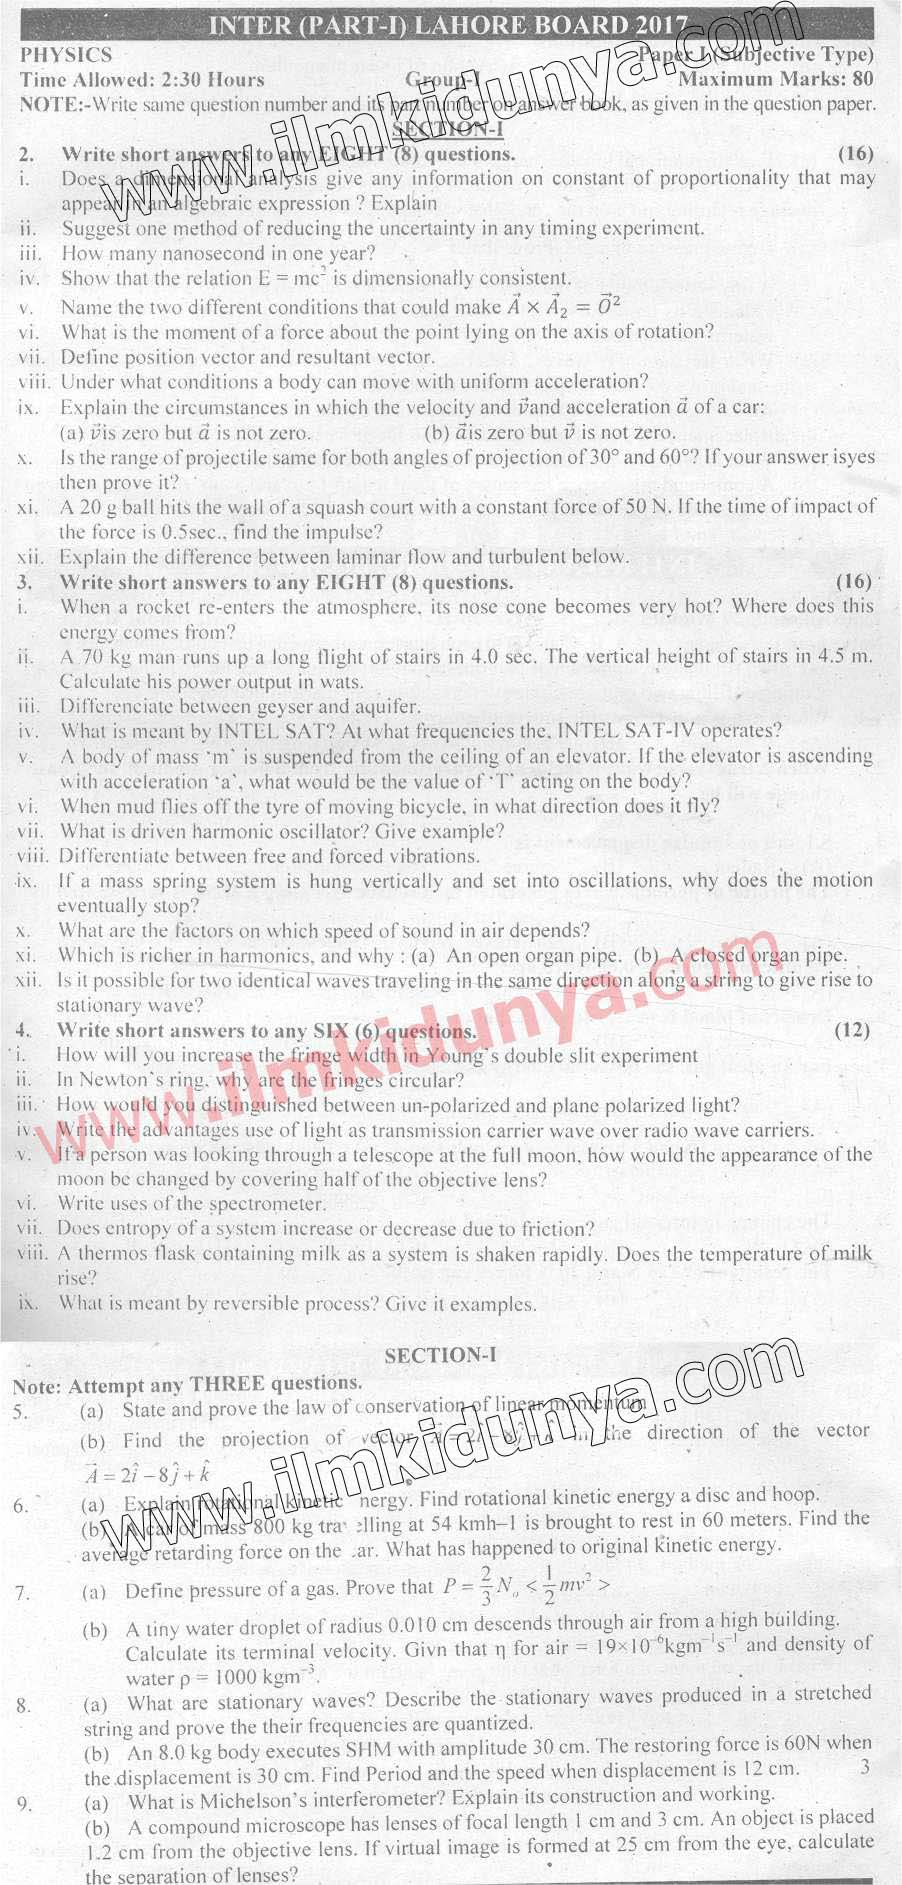 Past Papers Lahore Board 2017 Inter Part 1 Physics Group 1